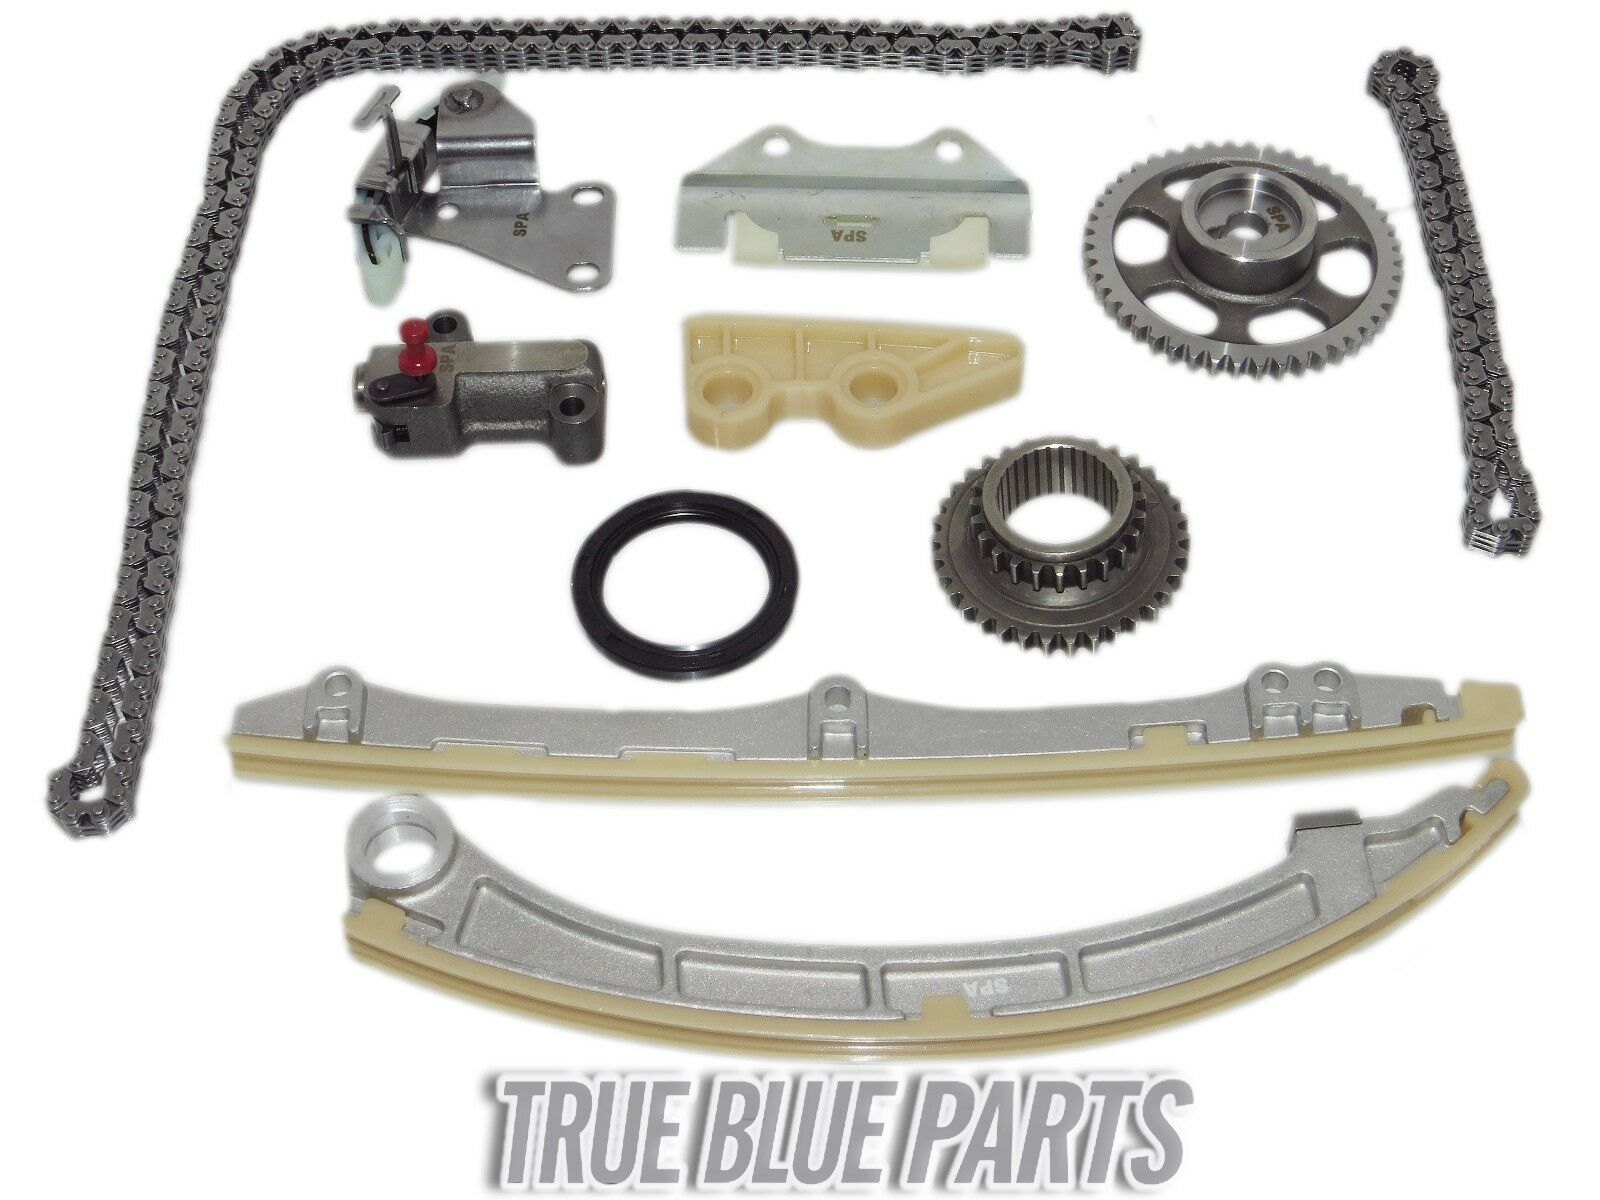 New Timing Chain Kit Fits 02 06 Acura Rsx Honda Civic 20l Dohc 3sgte Belt Tensioner 1 Of 1free Shipping